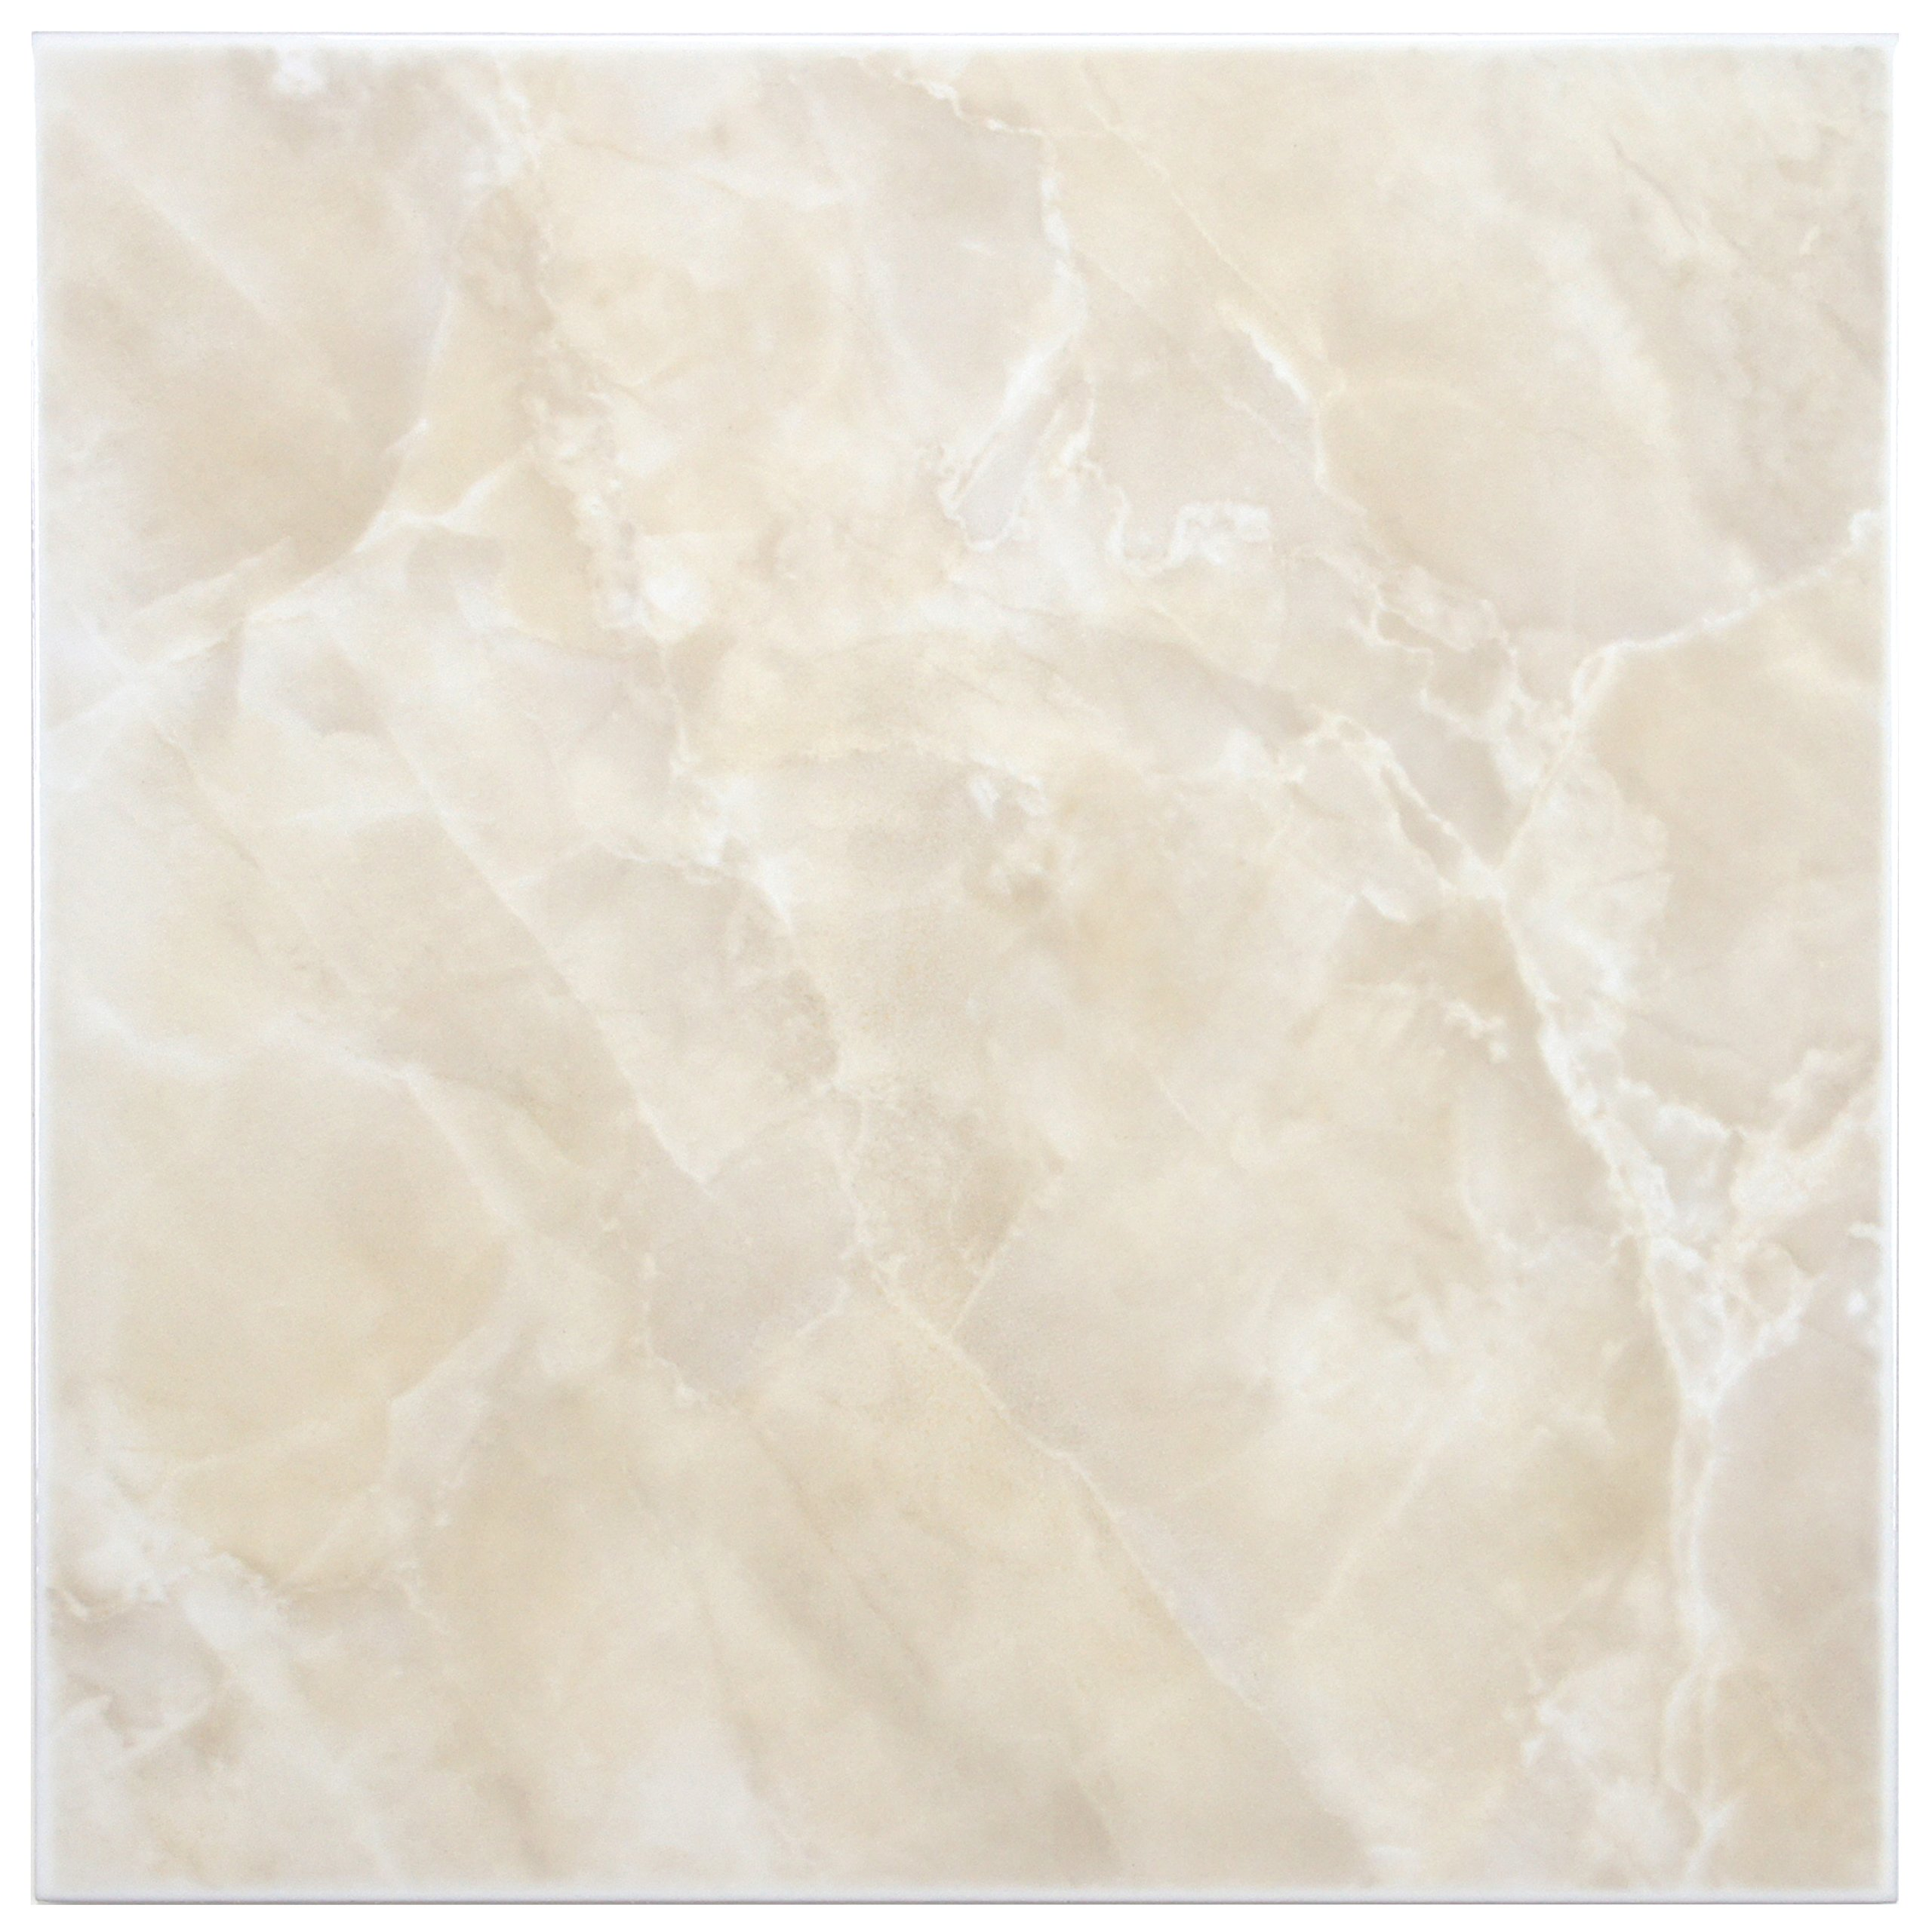 SomerTile FTC12GBE Sigma Ceramic Floor and Wall Tile, 11.75'' x 11.75'', Beige/Cream